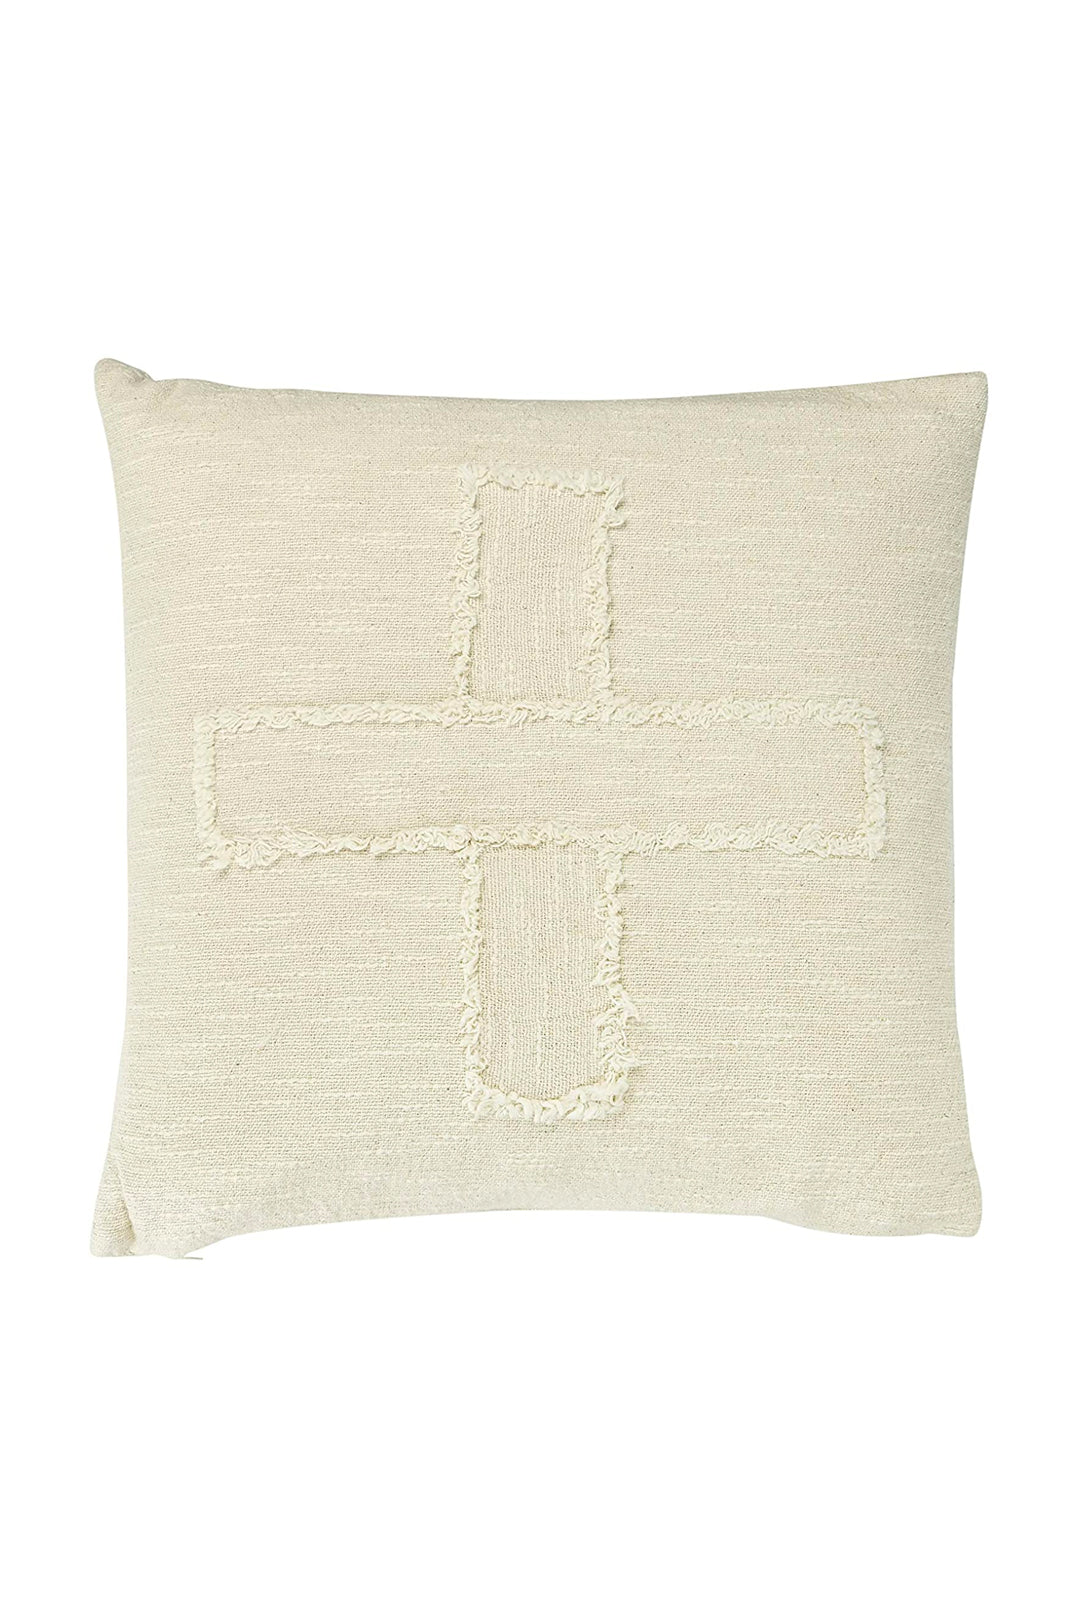 Cotton Mudcloth Pillow